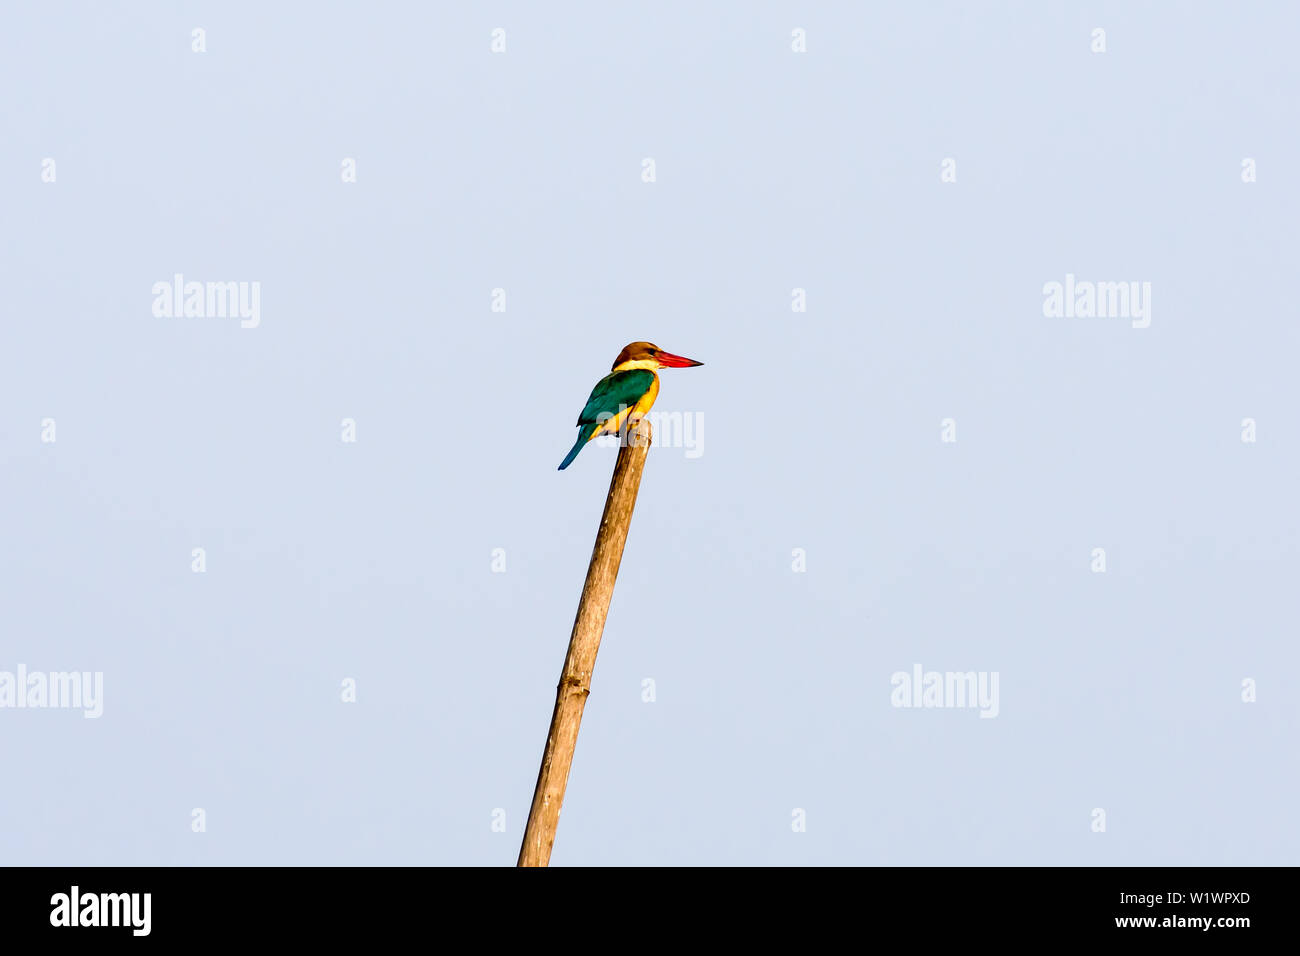 A medium sized multi-colored common Kingfisher bird Sitting on a Bamboo waiting to catch a fish. It is beautiful water bird found in India. Bharatpur - Stock Image